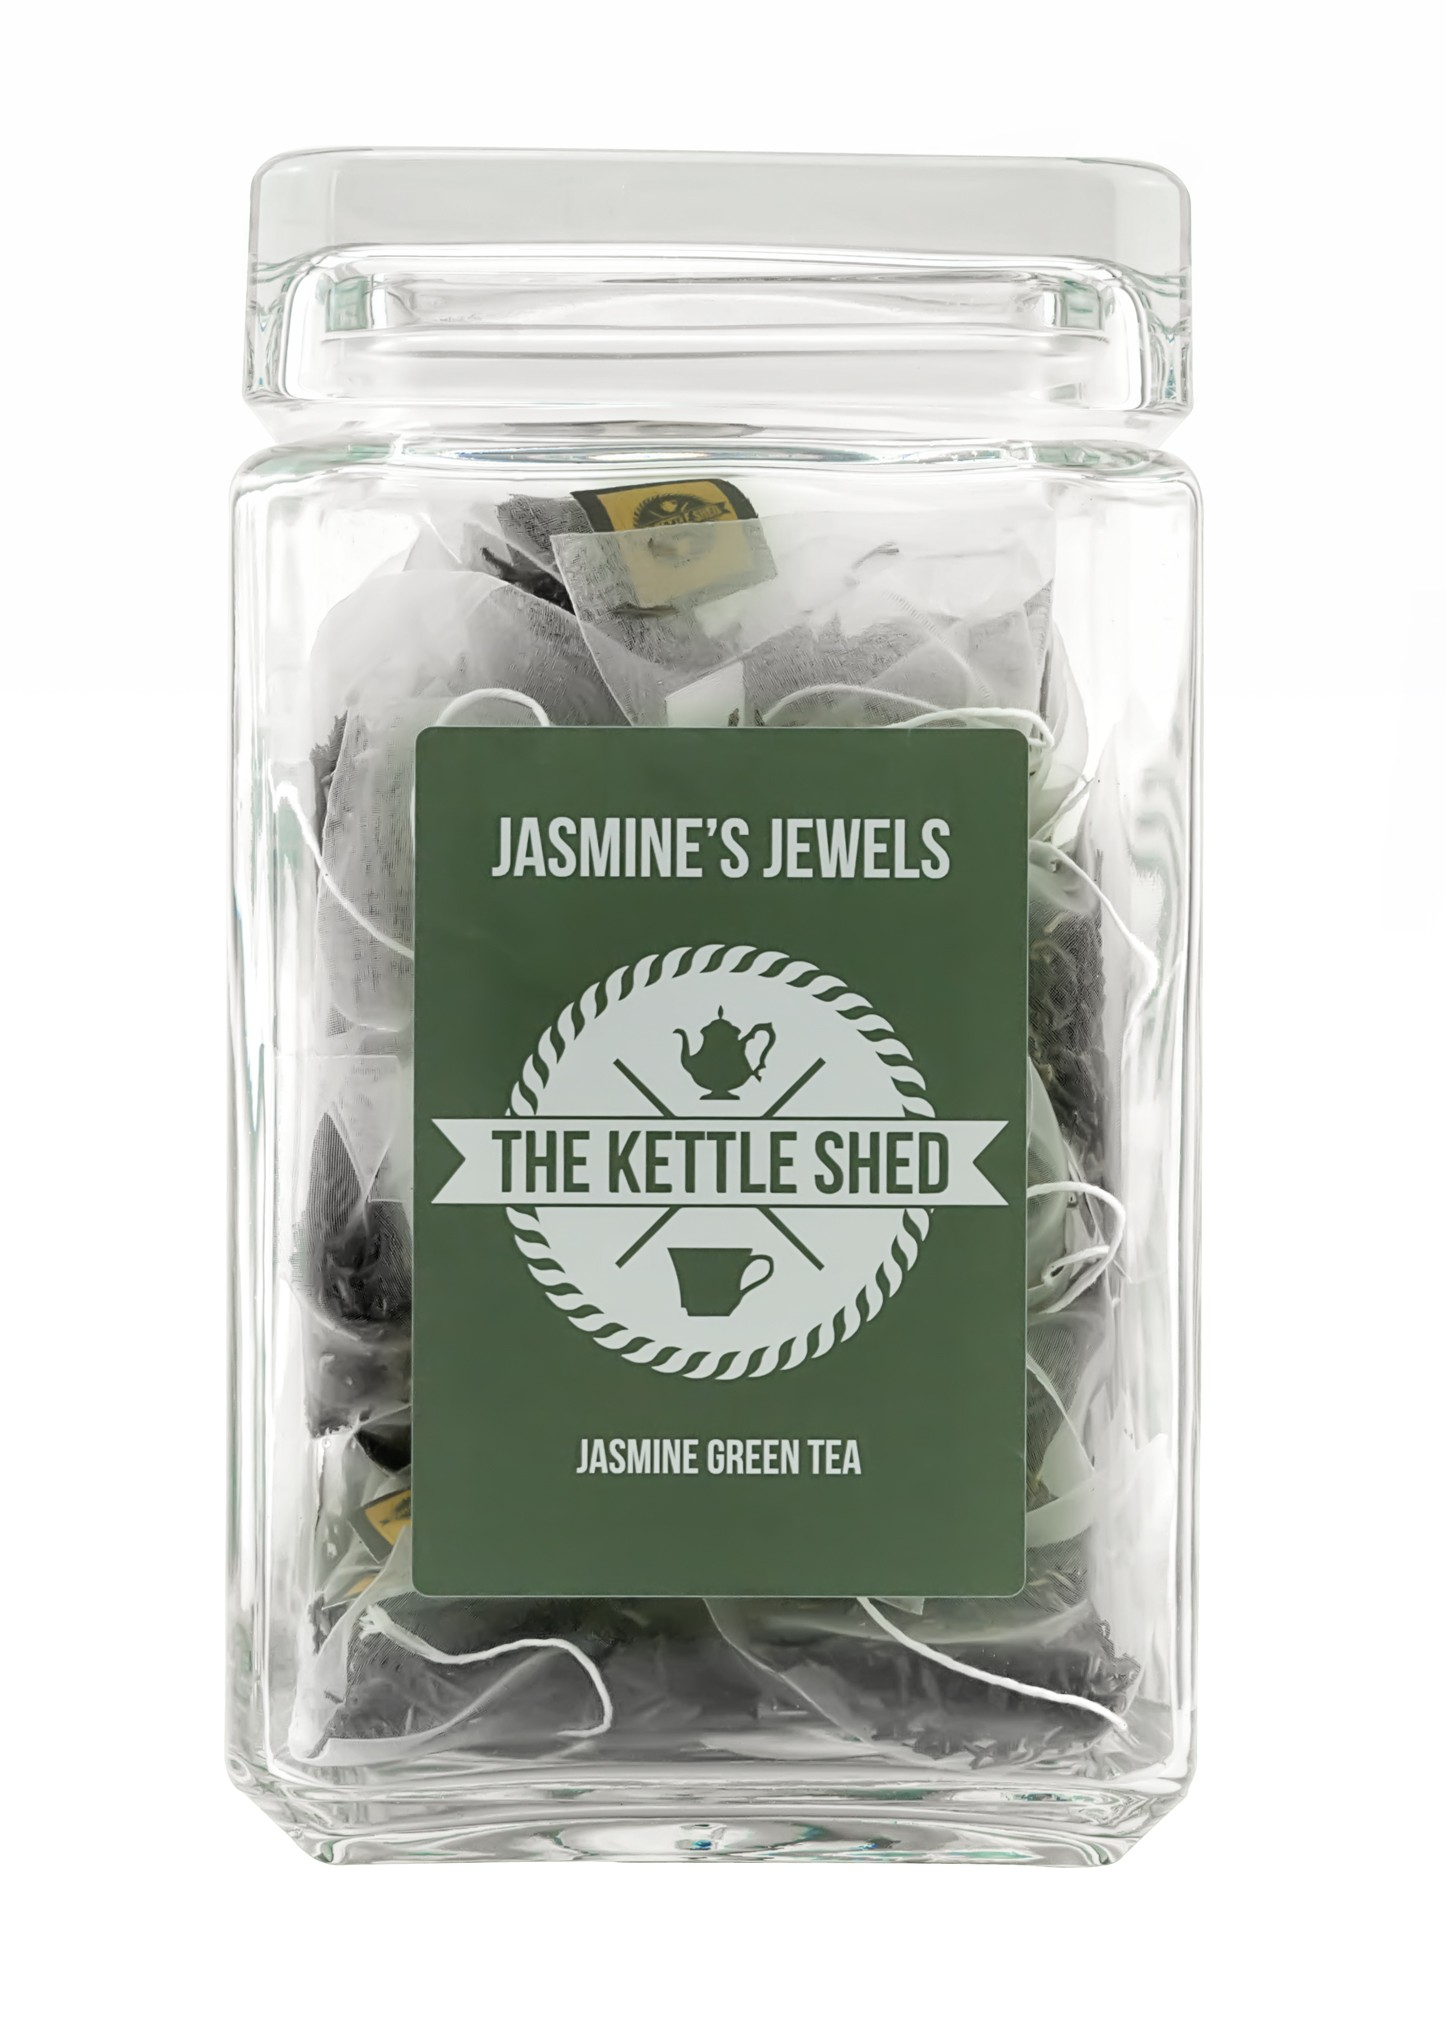 Jasmines Jewels - Glass Display Jar